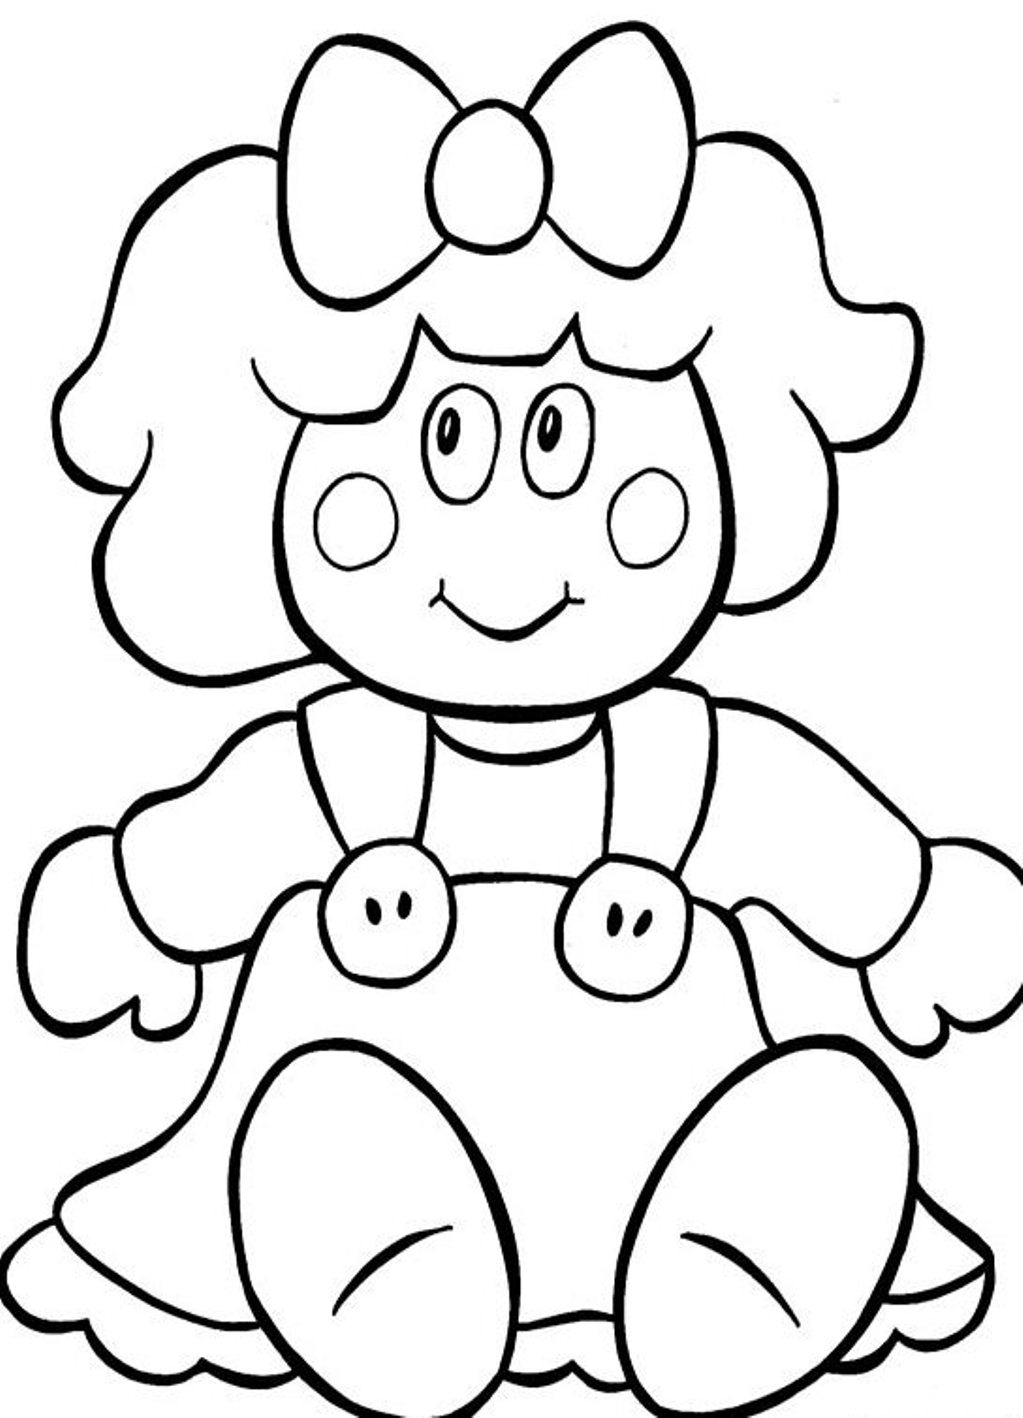 baby doll coloring page - doll coloring pages to download and print for free